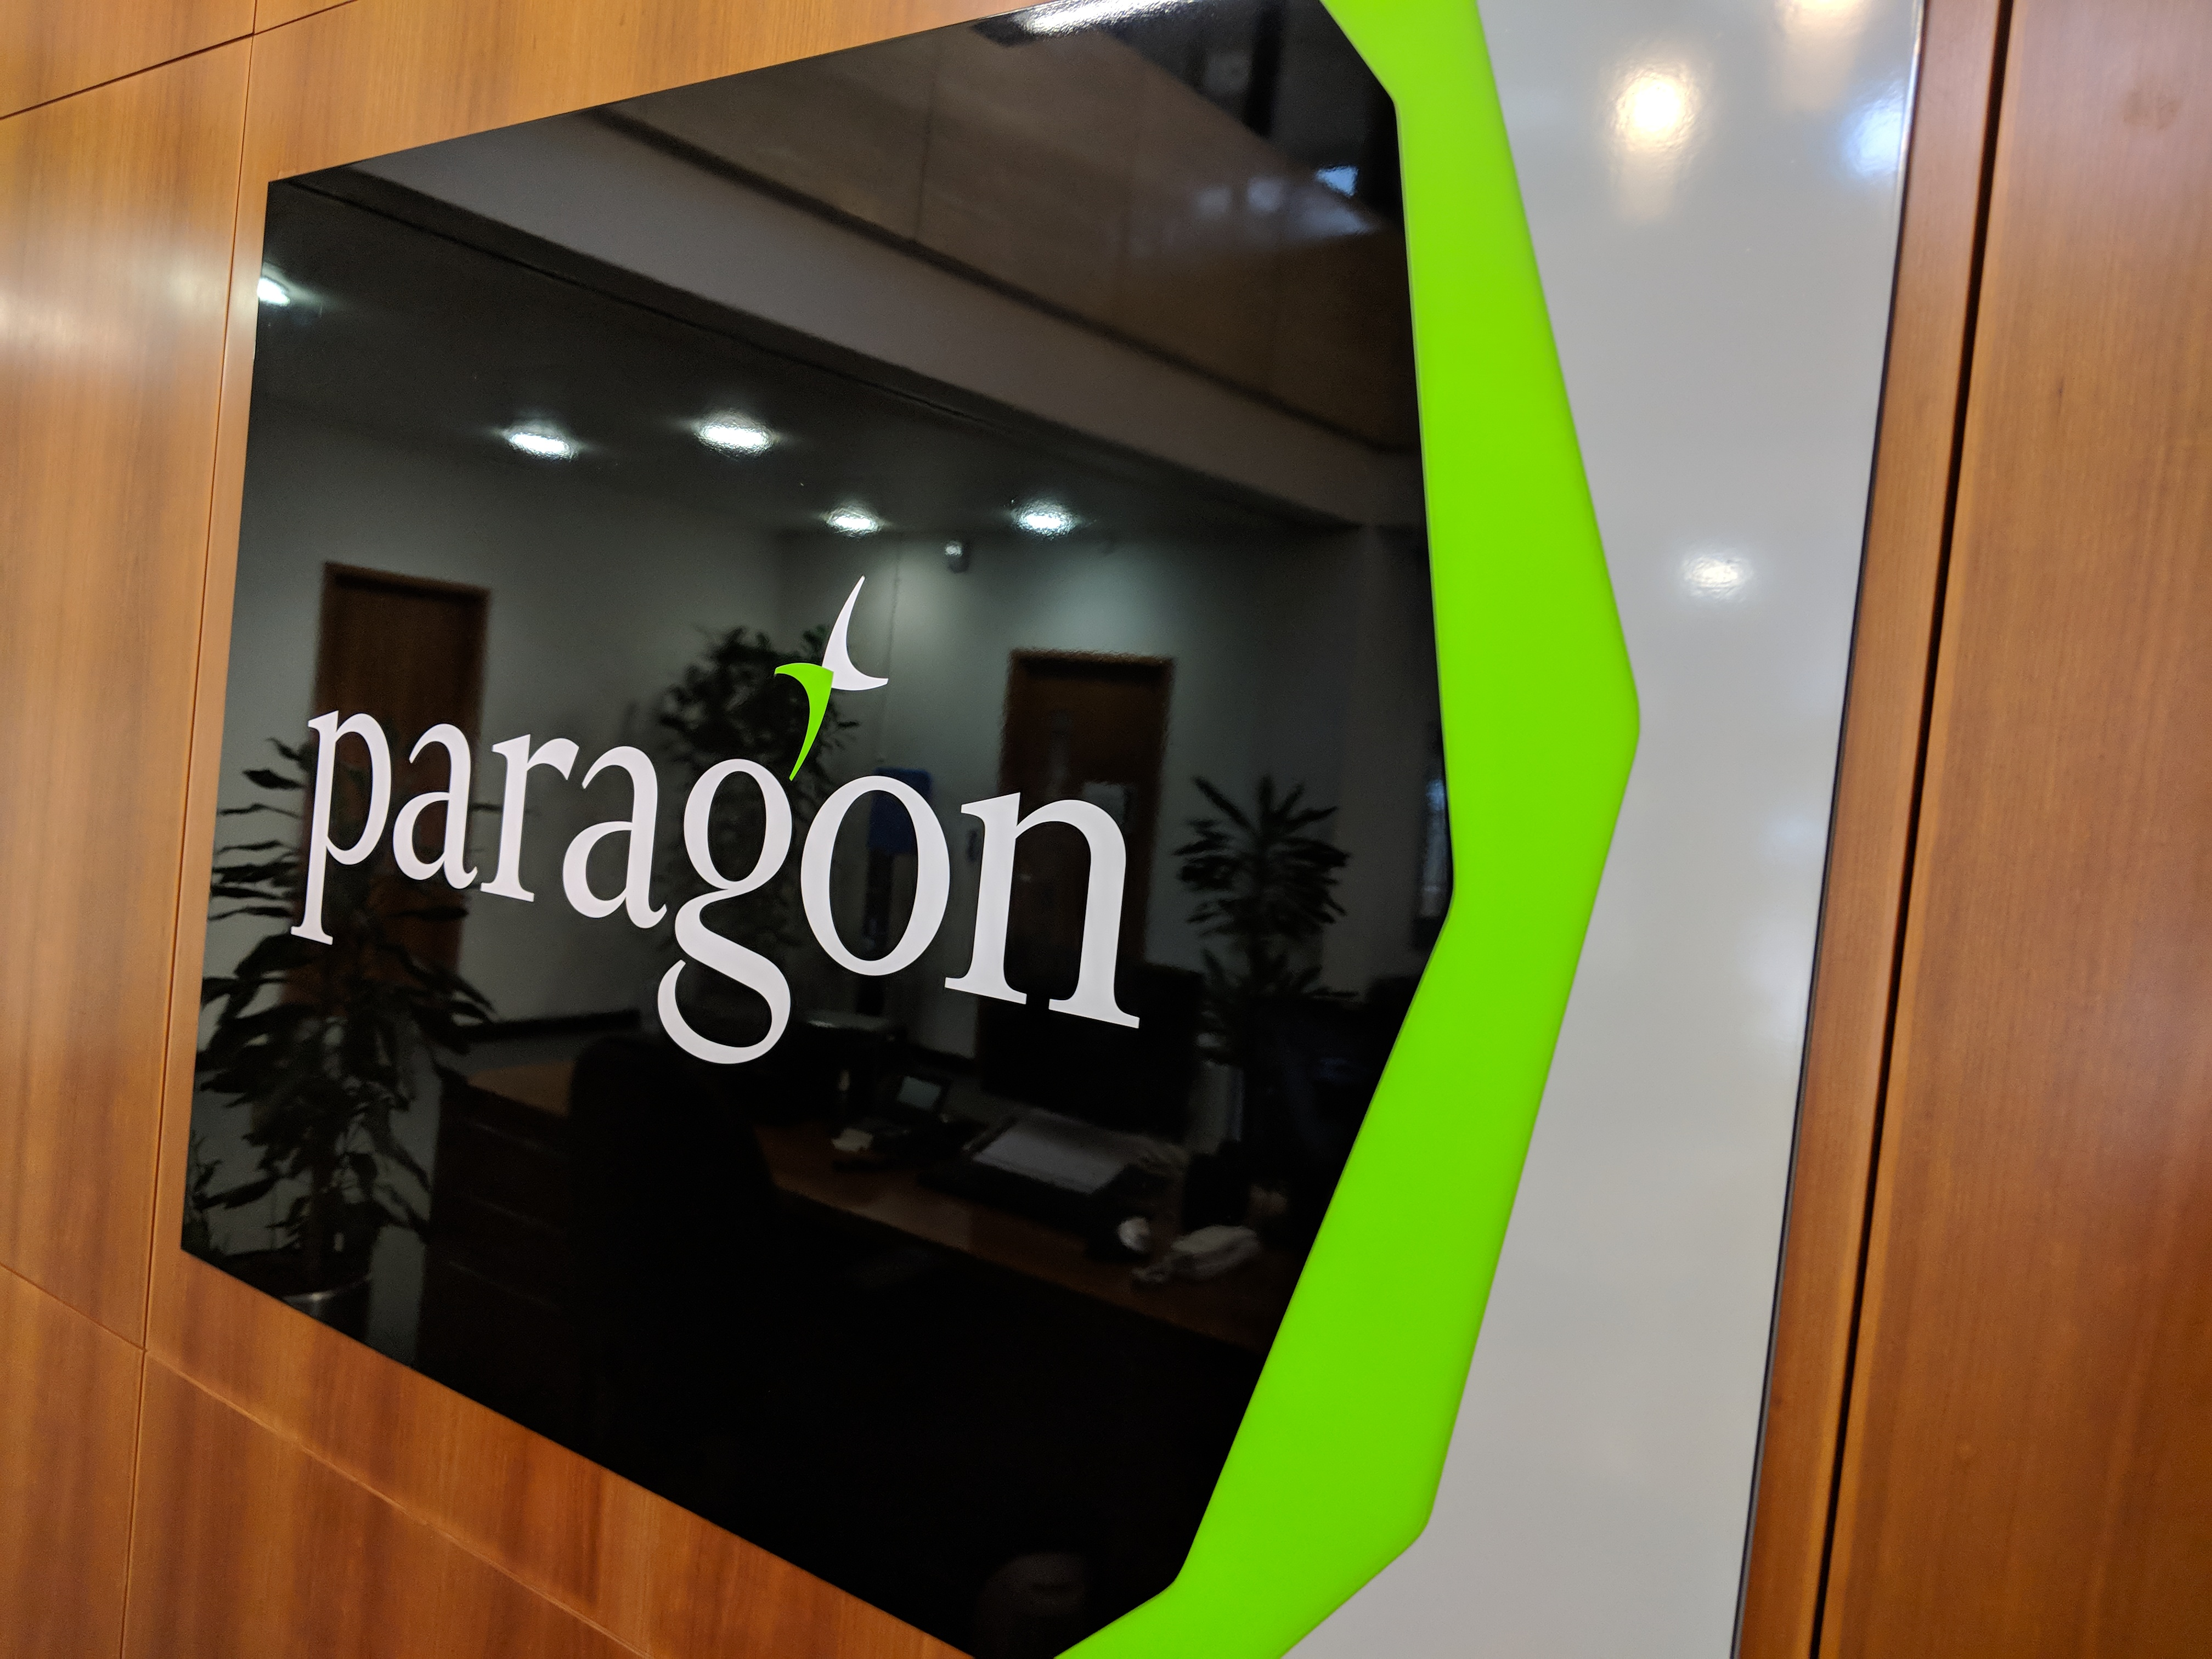 Paragon Banking announce an increased dividend of 9.3% to 21.2 pence per share